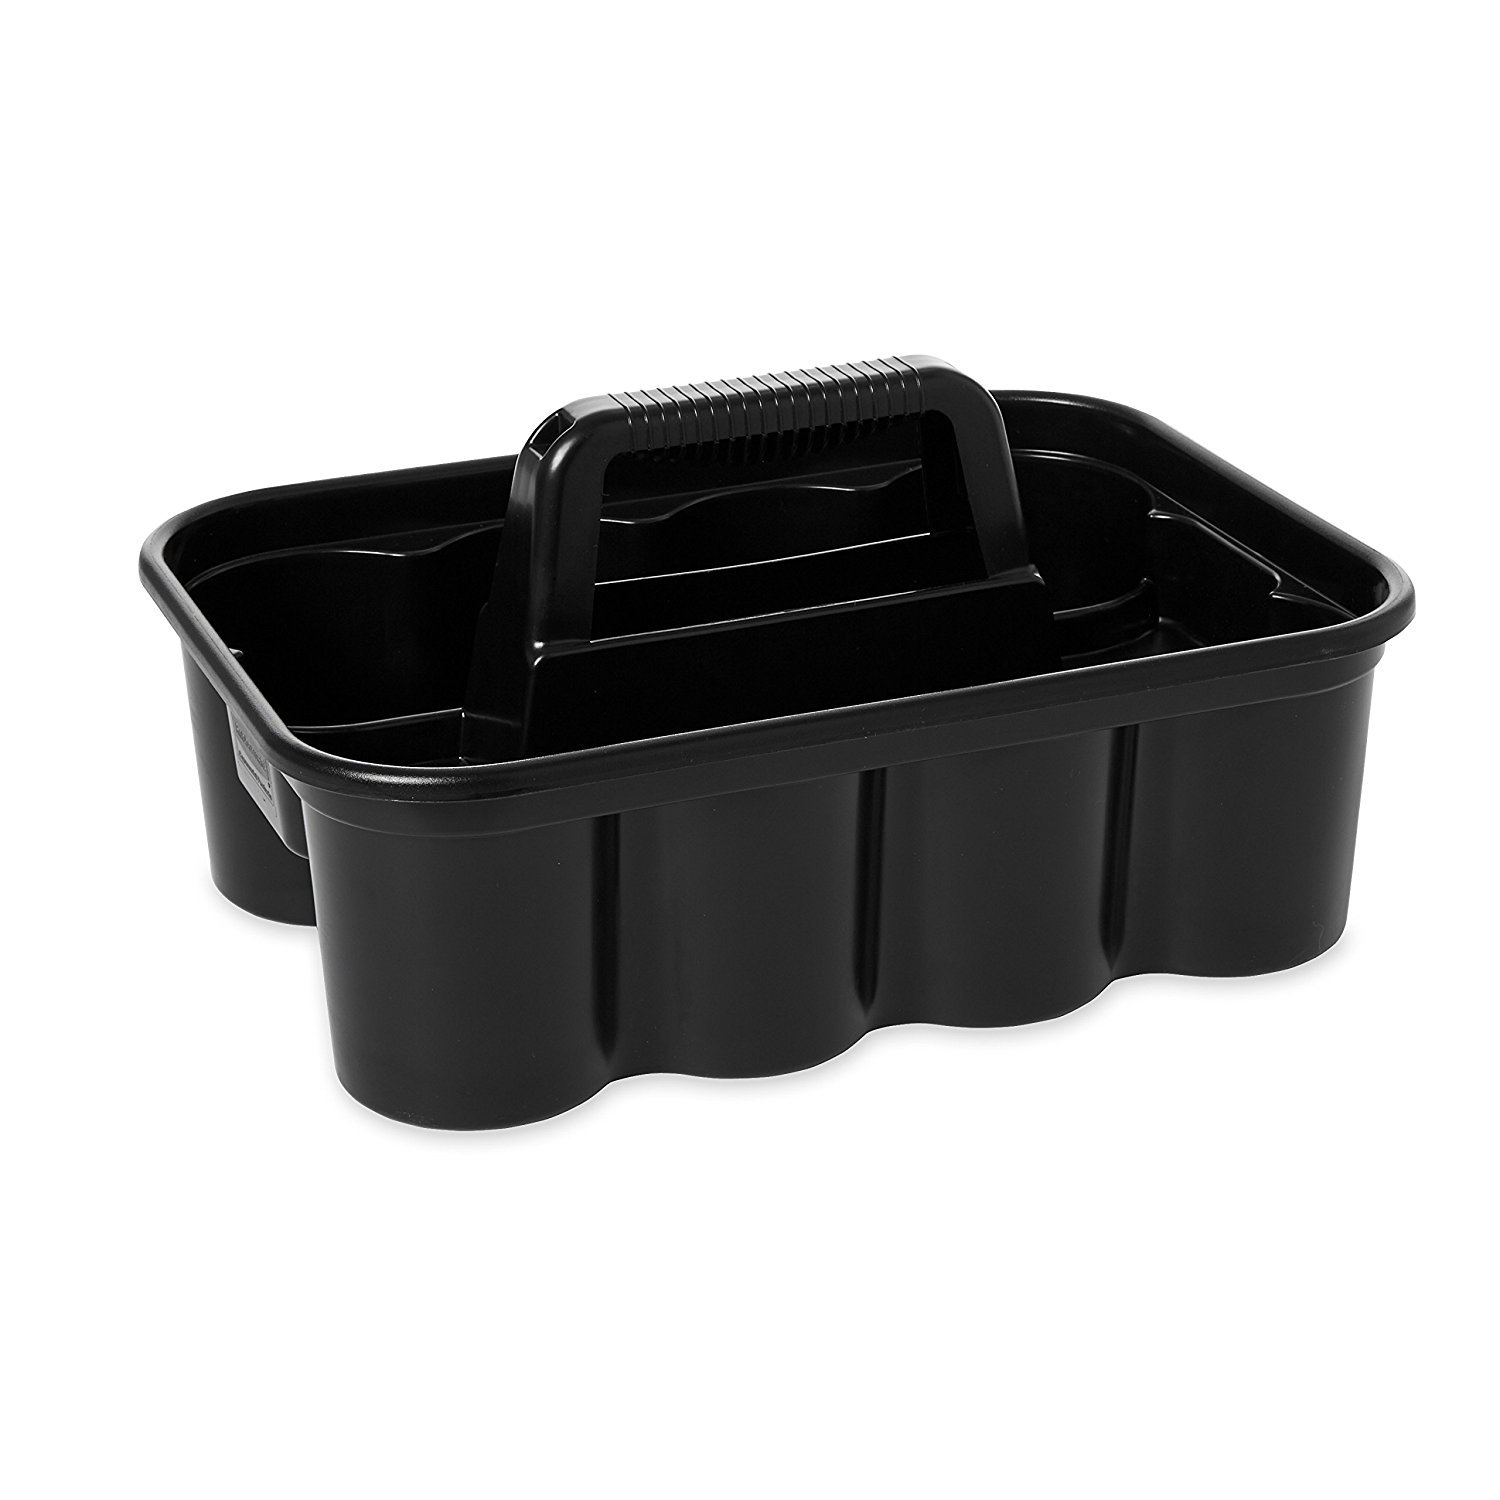 Rubbermaid Commercial Deluxe Carry Cleaning Caddy, Black (FG315488BLA) (1 PACK)